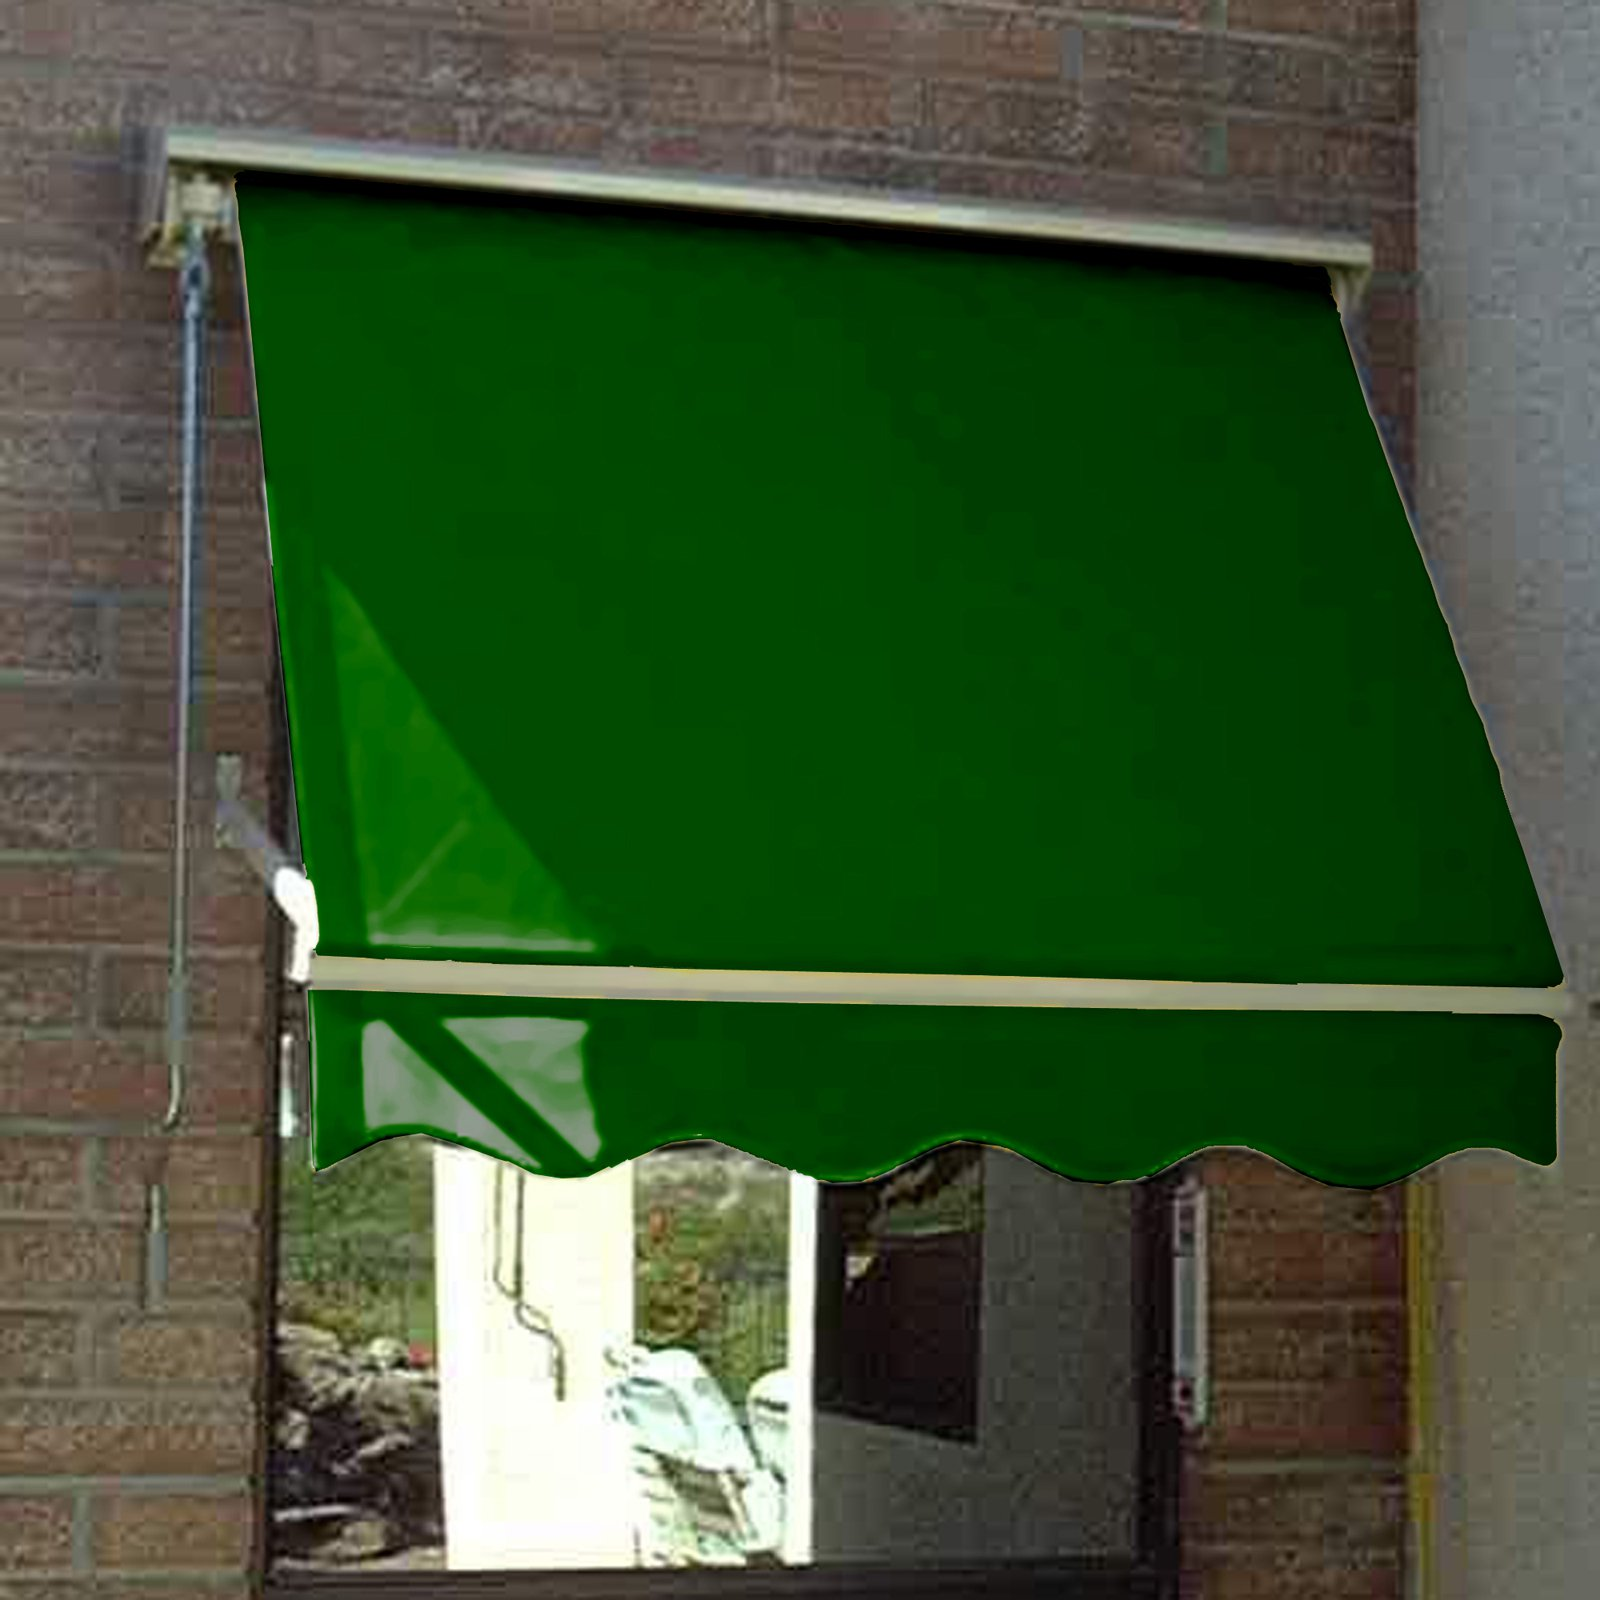 Awntech Nevada 10' Motorized Retractable Slope Awning